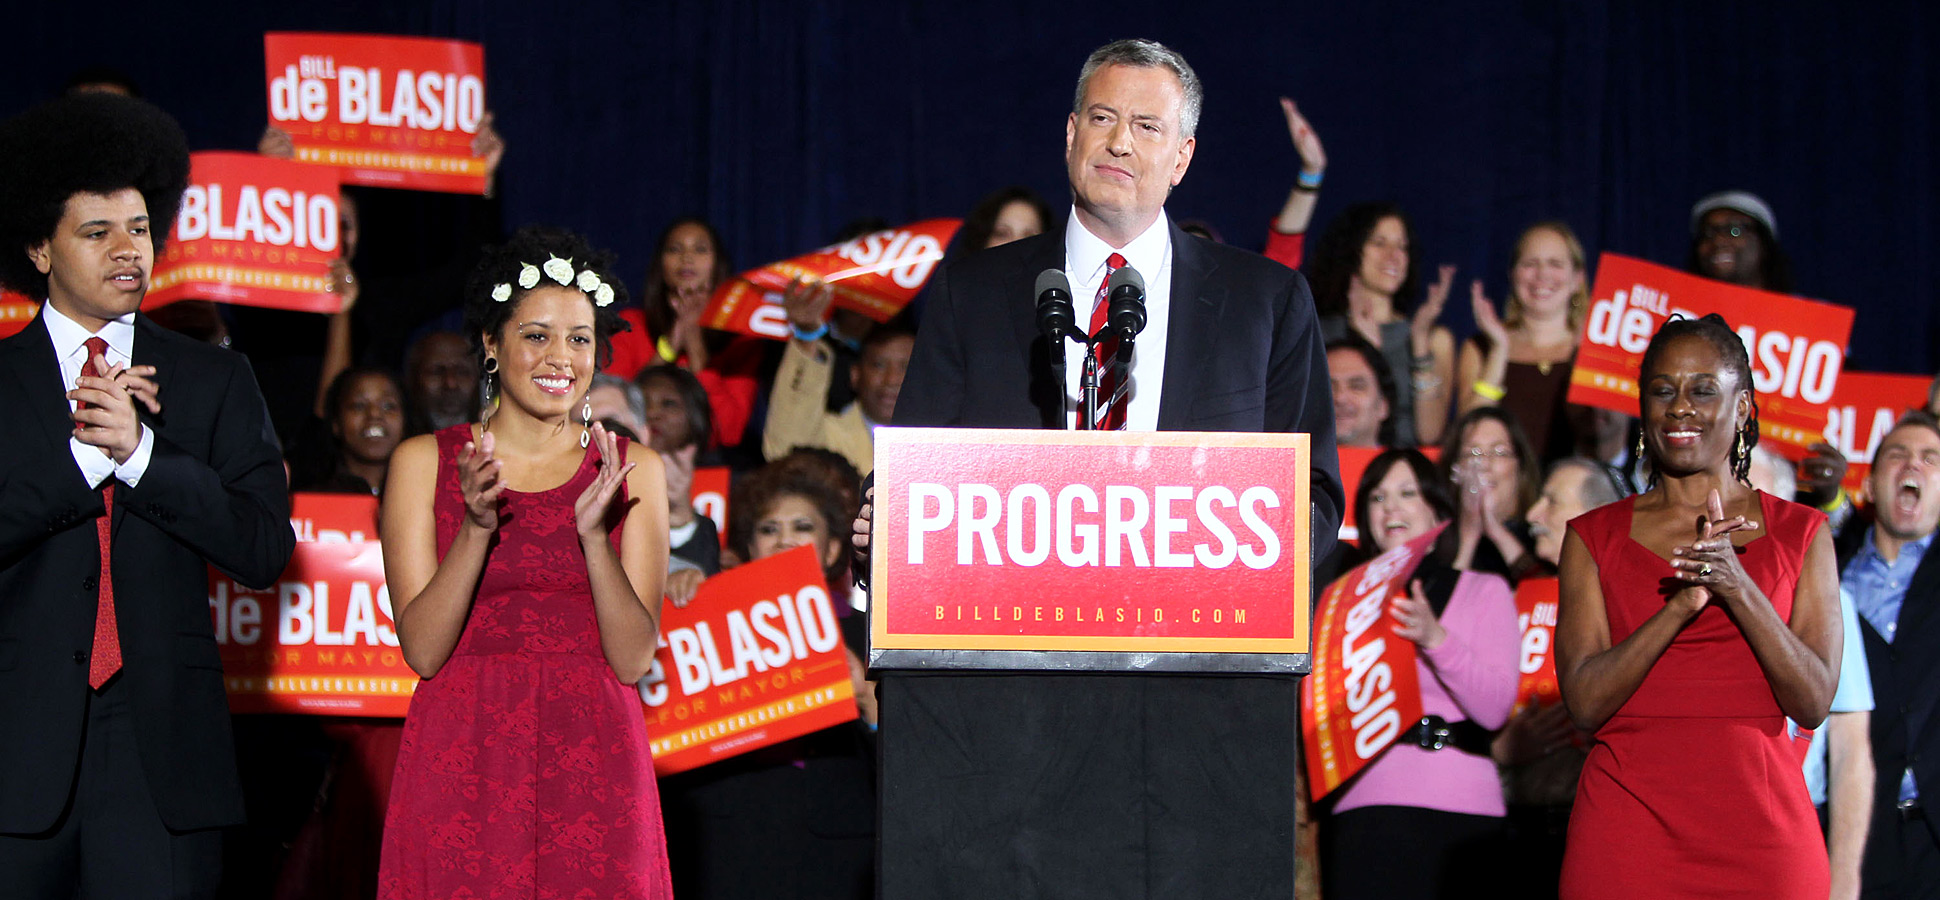 He's No Bloomberg, But New York's Next Mayor Is Your Friend